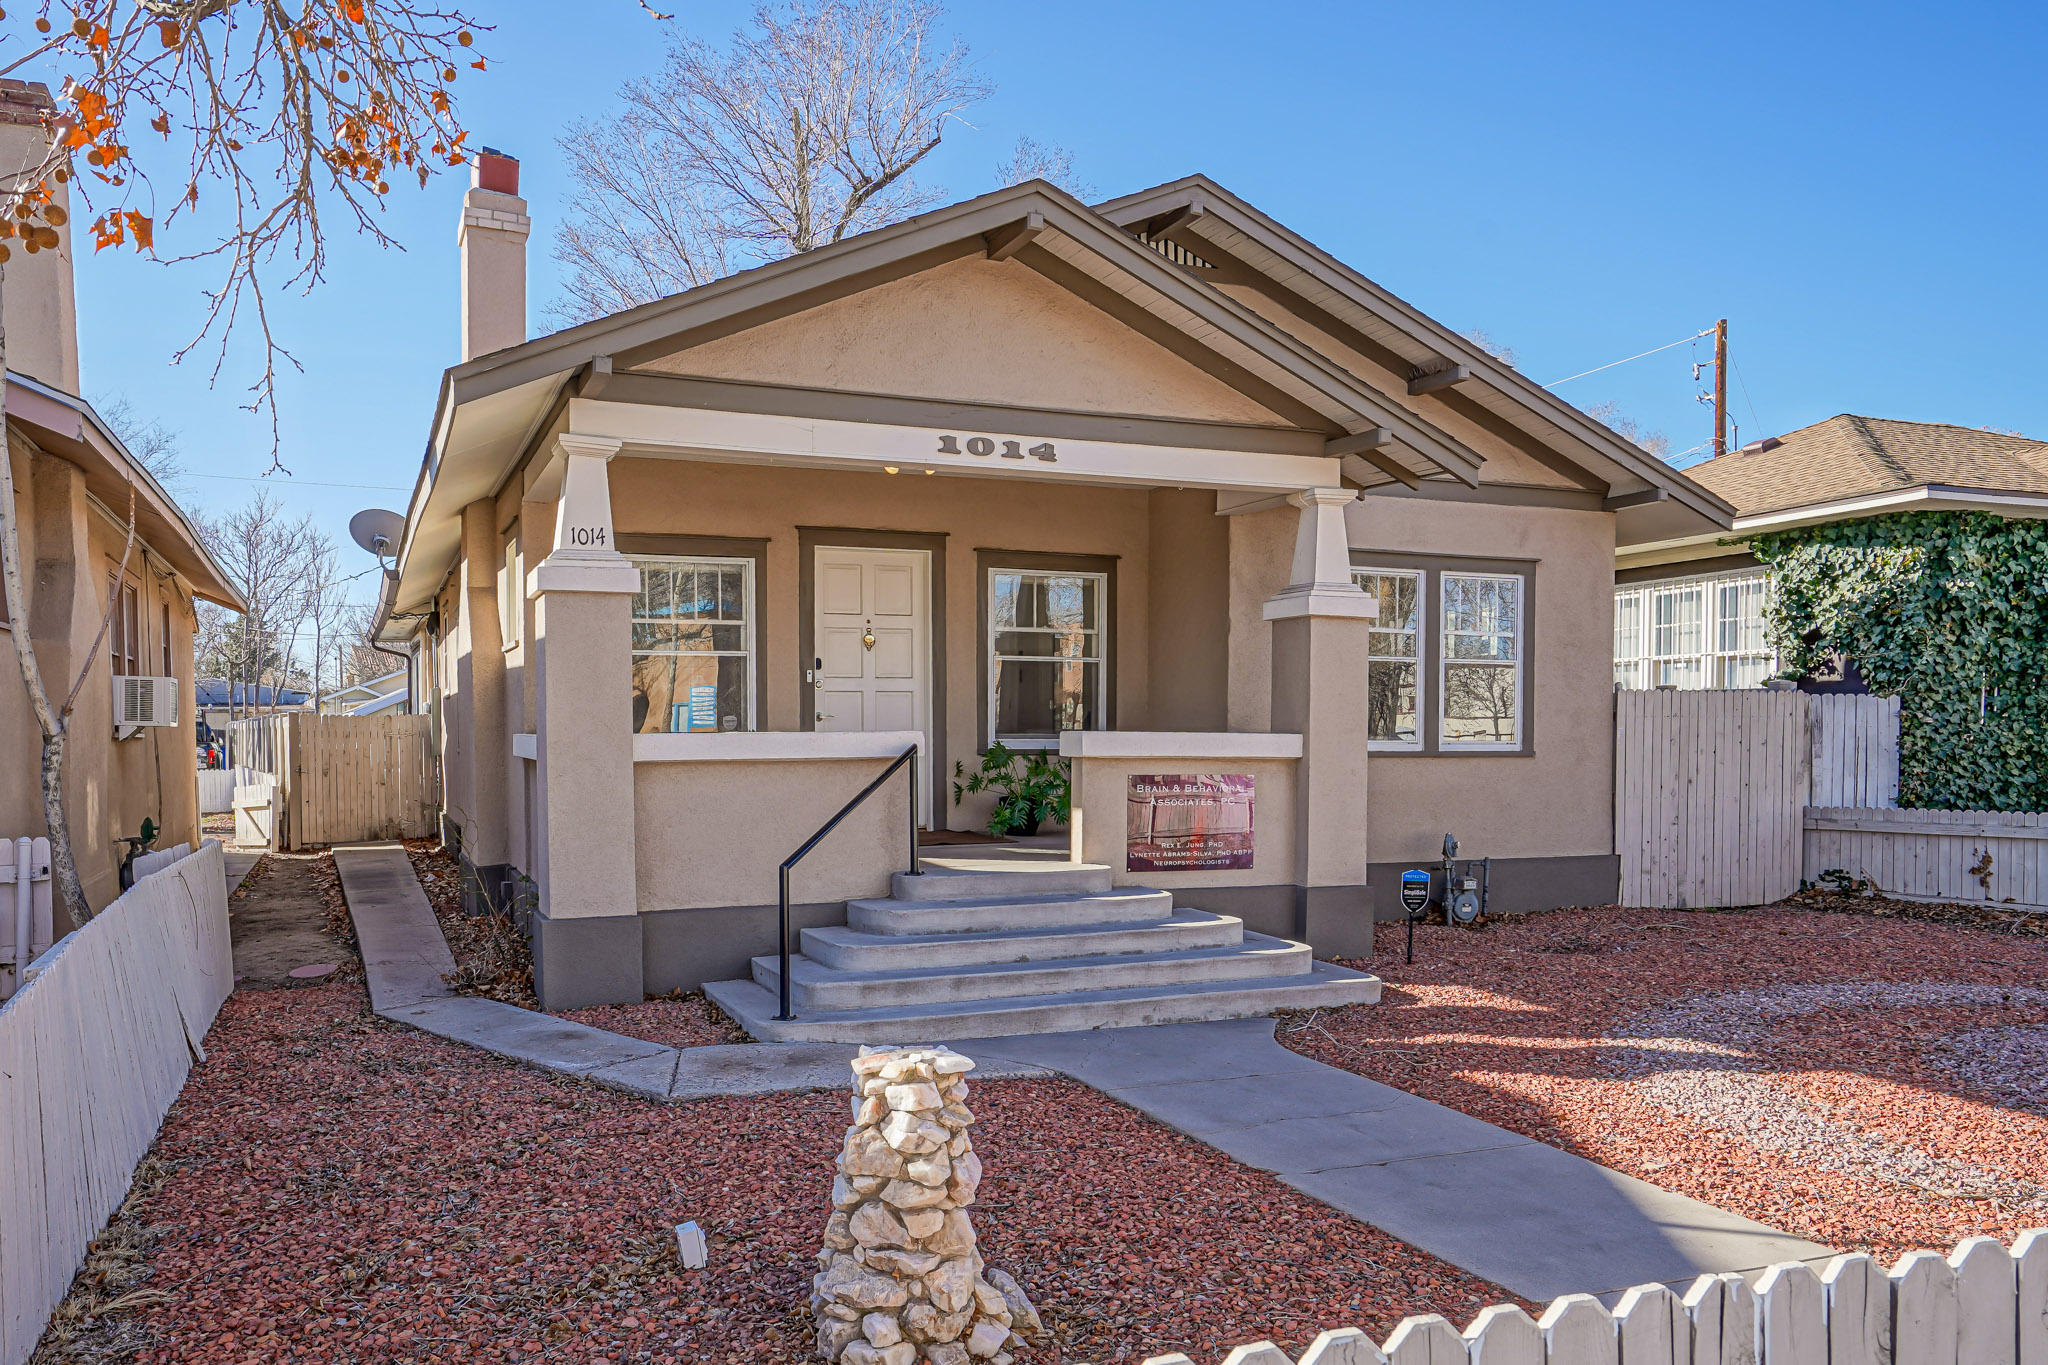 Own A Piece of Albuquerque with This 1911 Artistic Bungalow Style Home and Unique Office.  The Vibrant Creative Colors Keep A Positive and Calm Mood That Will Stimulate Your Creative and Inspiring Side.  The Rear Heated and Cooled Sun Room Is Surrounded with Jeld Wen Windows To Brighten Up Your Day.  The Area Is Perfect For Walking With Close Access To Albuquerque Best Coffee Shops, Breweries and Restaurants.  The Chefs Kitchen Has Been Tastefully Remodeled with Wood Block Island, Prep Area and Bosch Dishwasher and Stove.  The Floors Are A Very Attractive Refinished Hardwood Floors and Porcelain Tiles.  Be Sure To Keep In Mind This Home Also Has A Newer Roof. Newer Refrigerated Air and Has Been Extremely Well Maintained.  A Full Neighborhood and Property Brochure Is Available On Request!